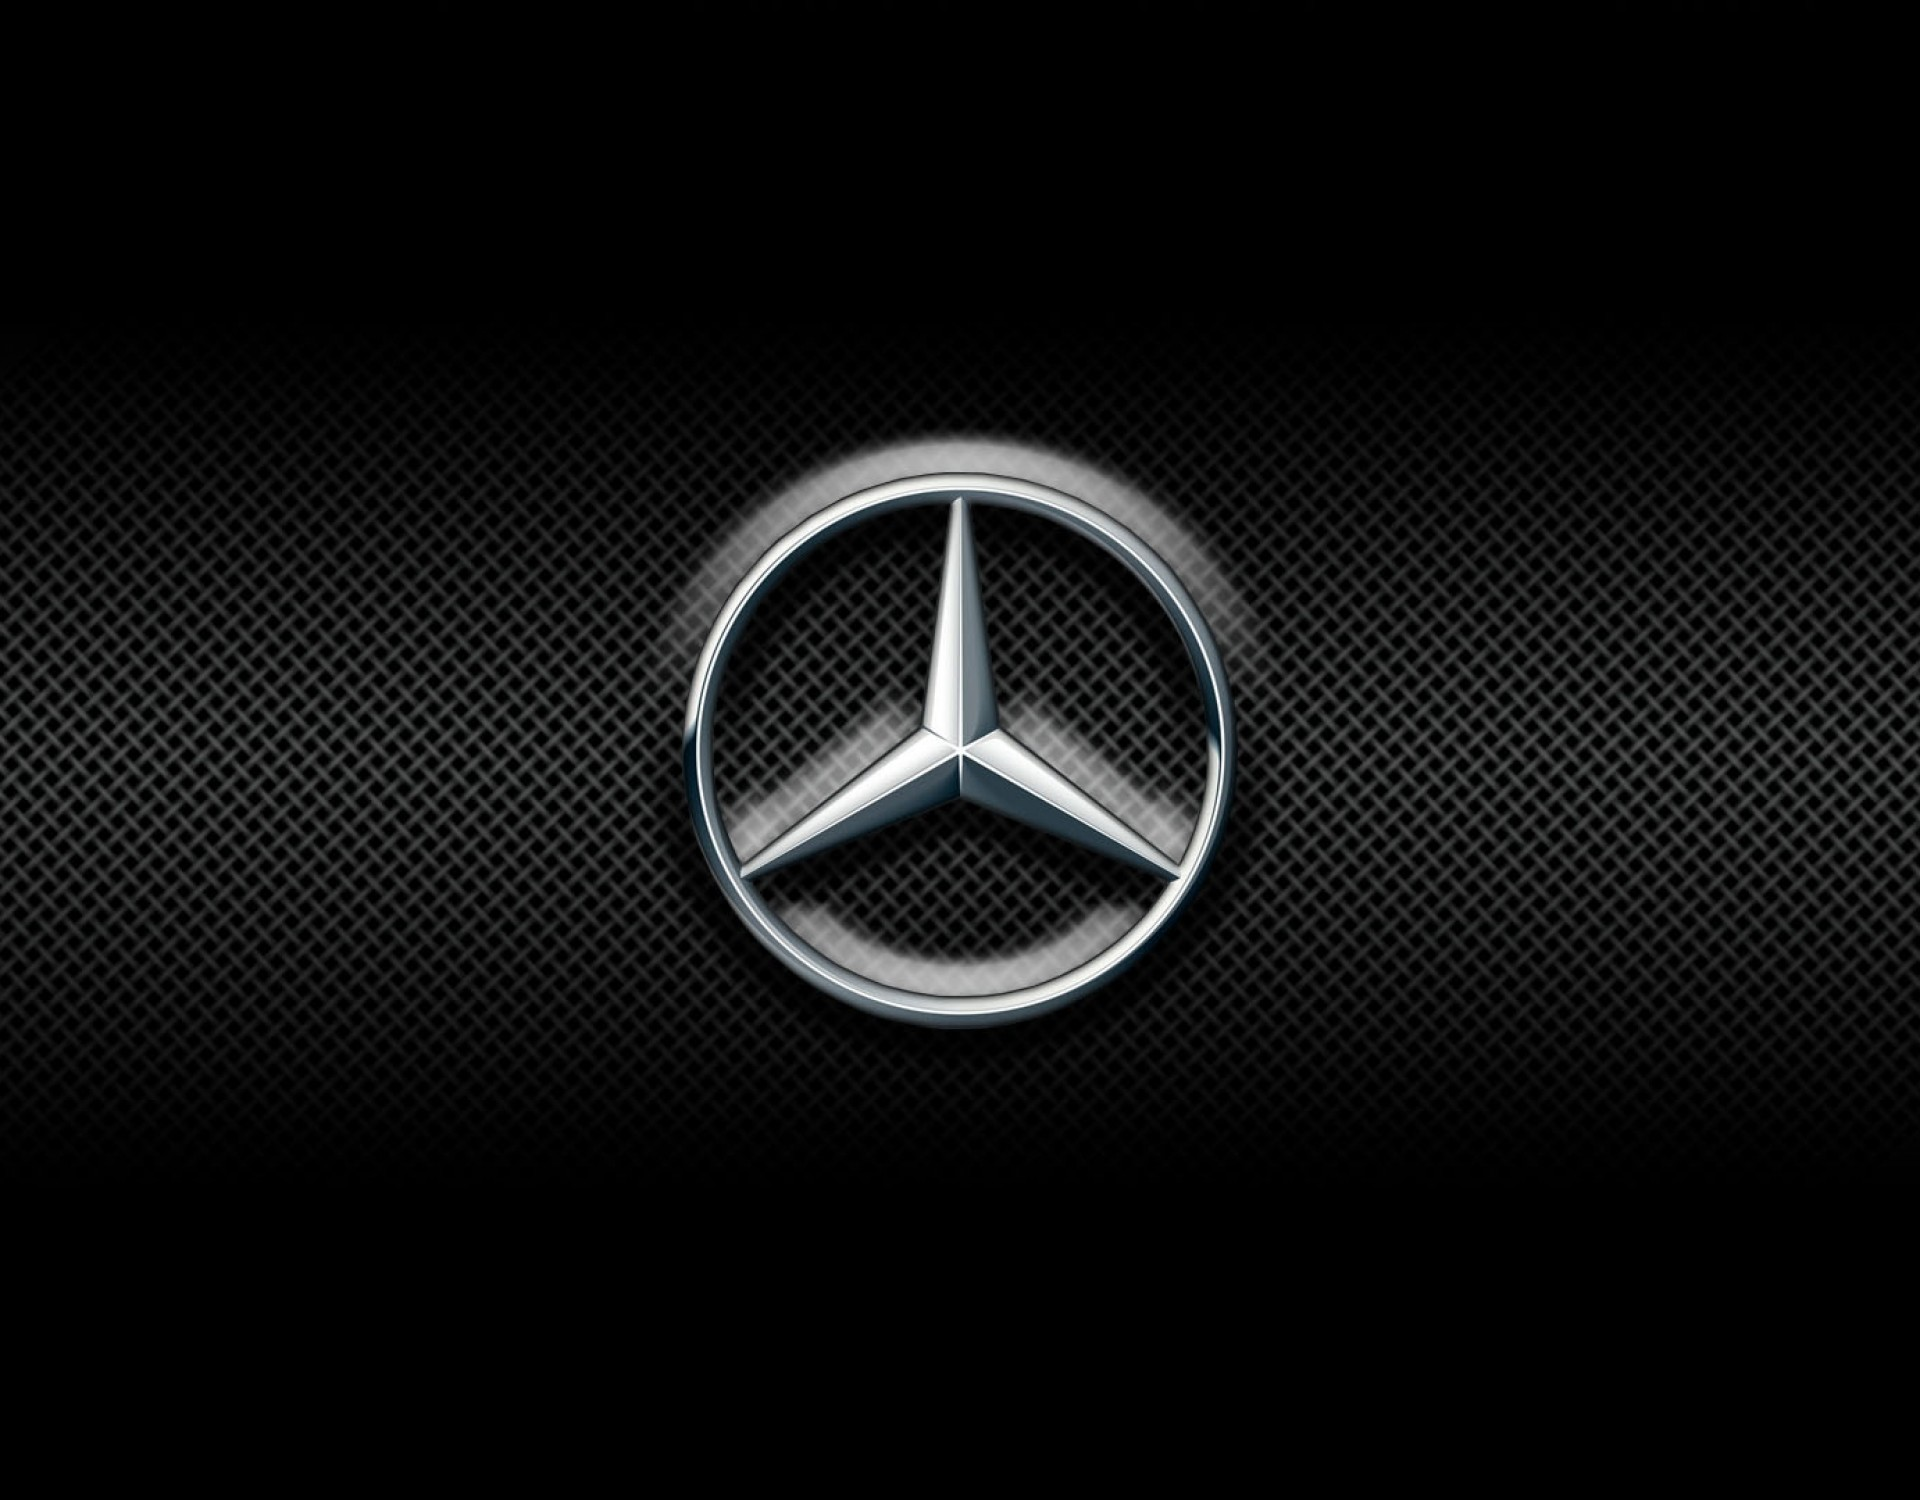 Mercedes Logo Wallpapers: Find best latest Mercedes Logo Wallpapers in HD  for your PC desktop